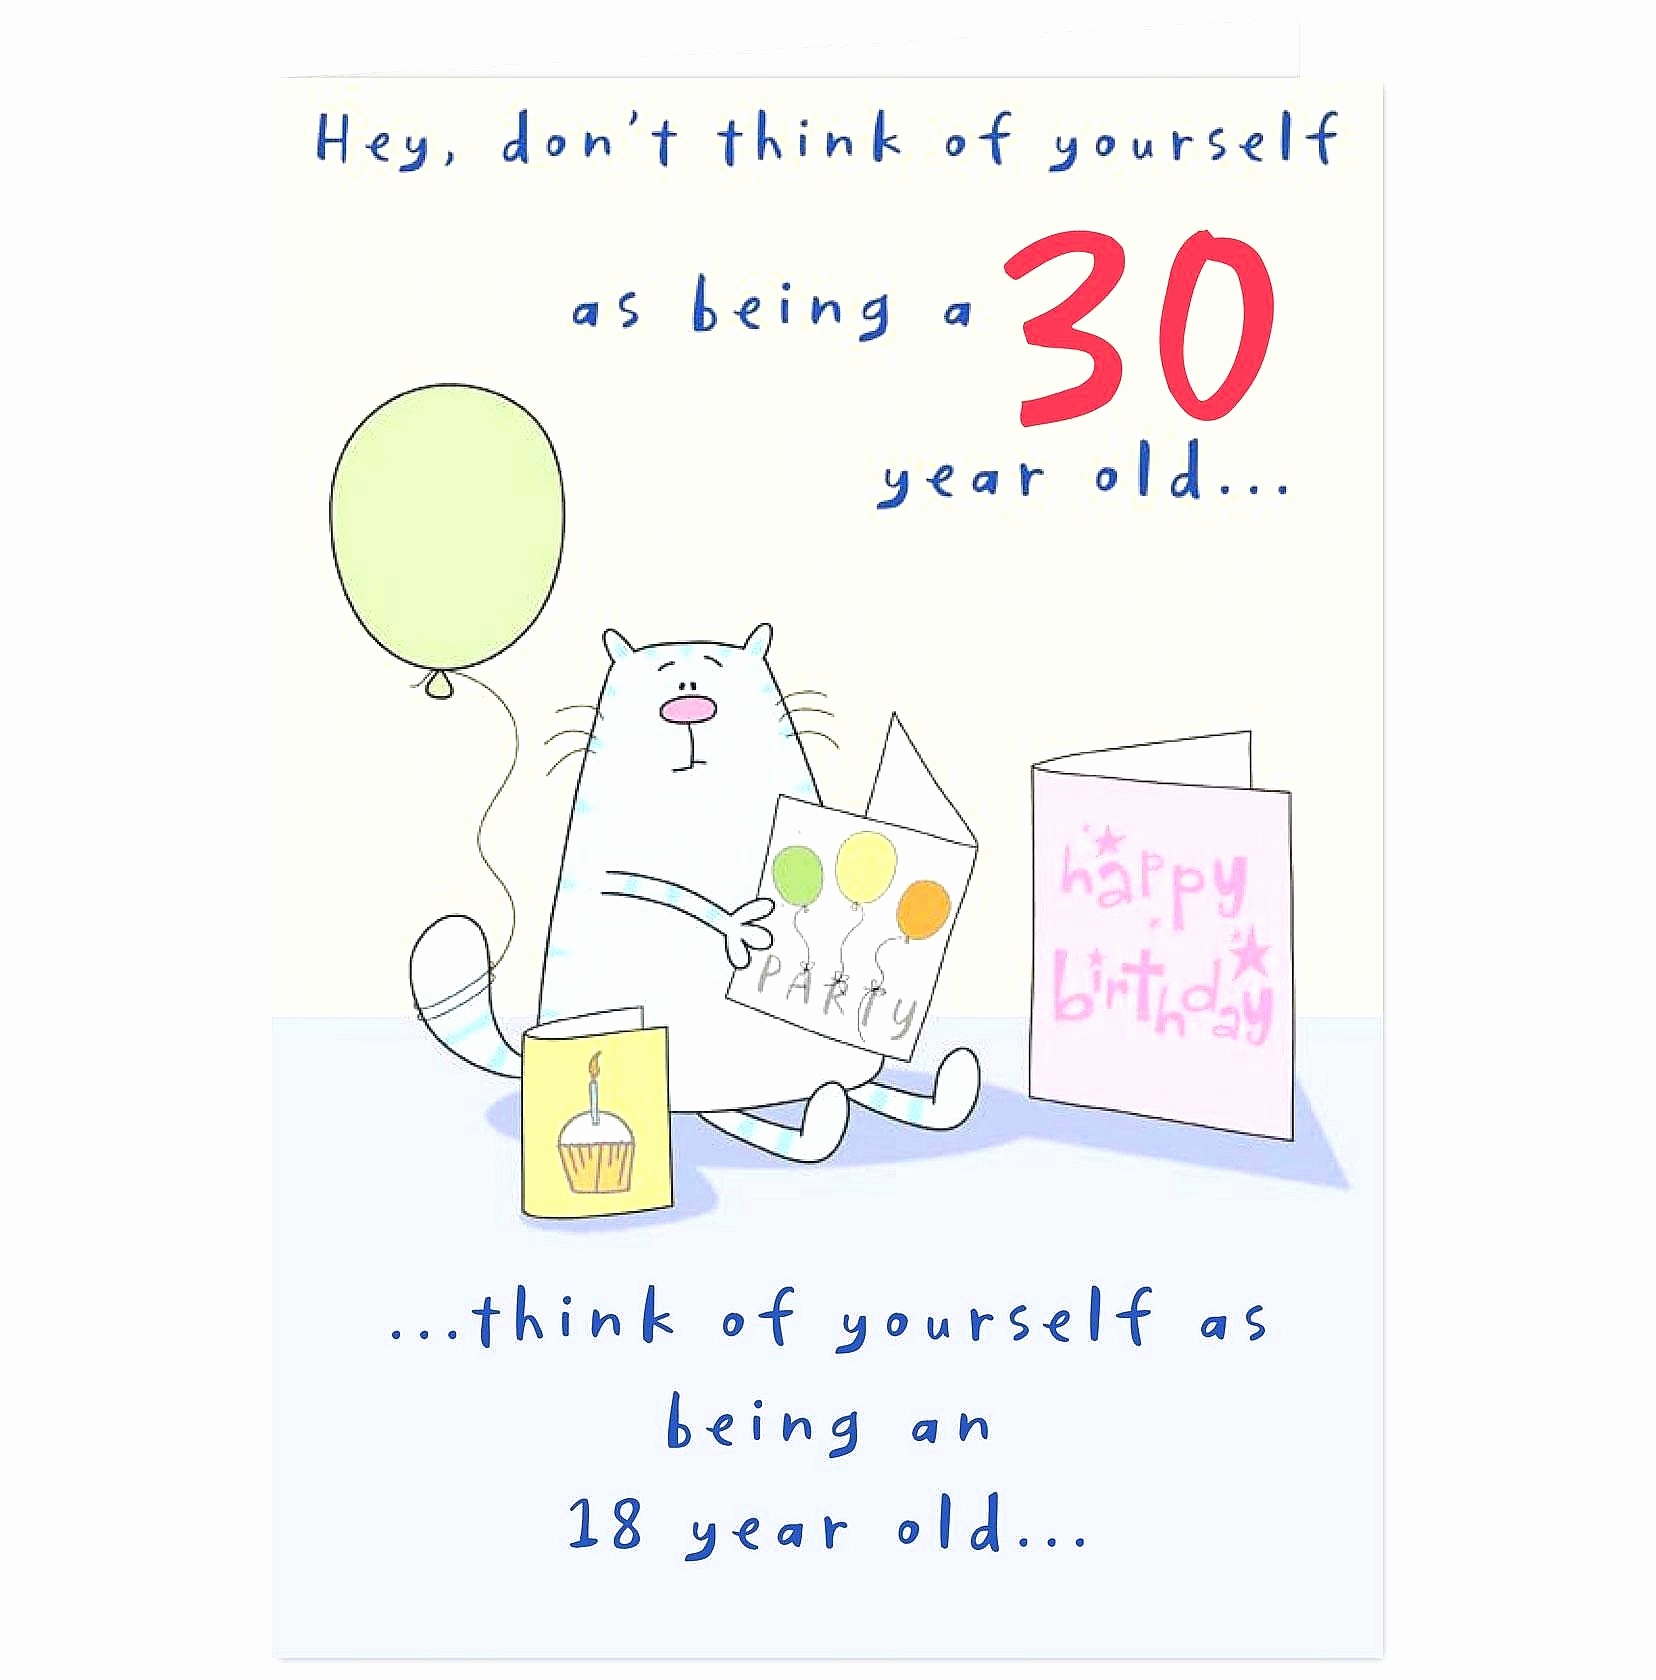 birthday card ideas for older sister ; what-to-write-in-a-birthday-card-for-sister-elegant-sister-birthday-card-sayings-gallery-birthday-cards-design-of-what-to-write-in-a-birthday-card-for-sister